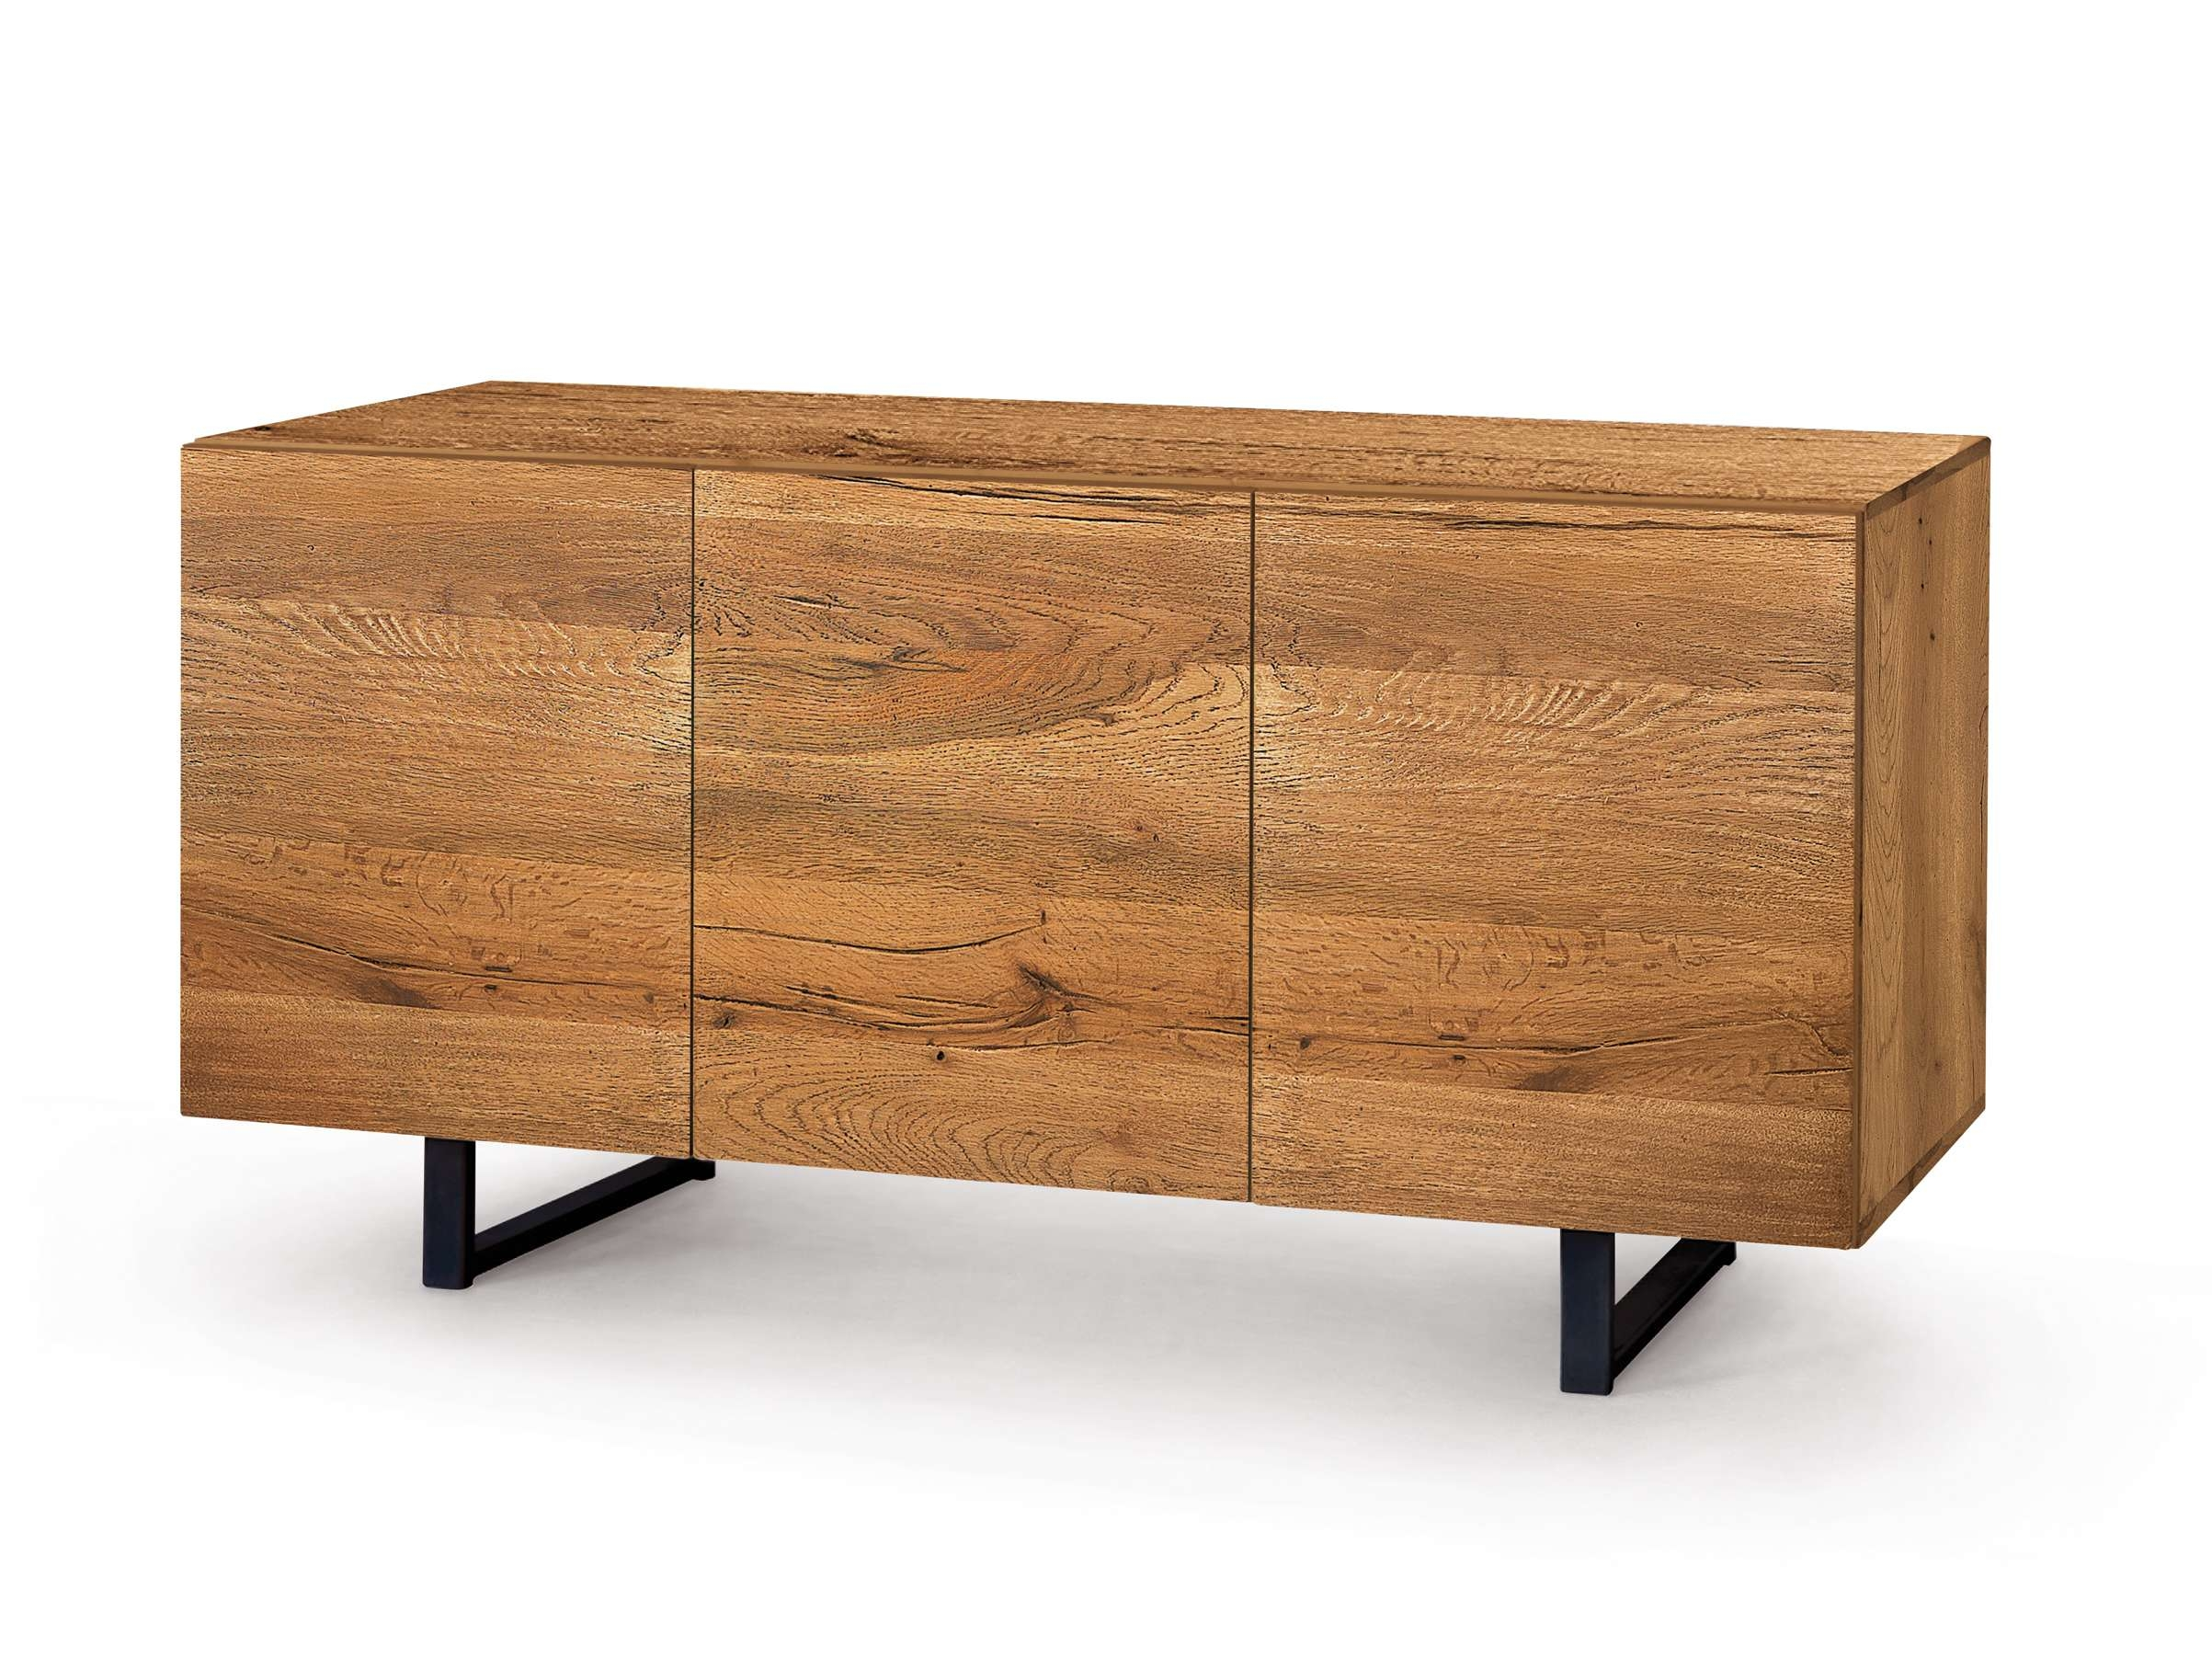 Oak Sideboard With Doors Enzaminiforms Design E Ggs Within Wooden Sideboards (Gallery 19 of 20)